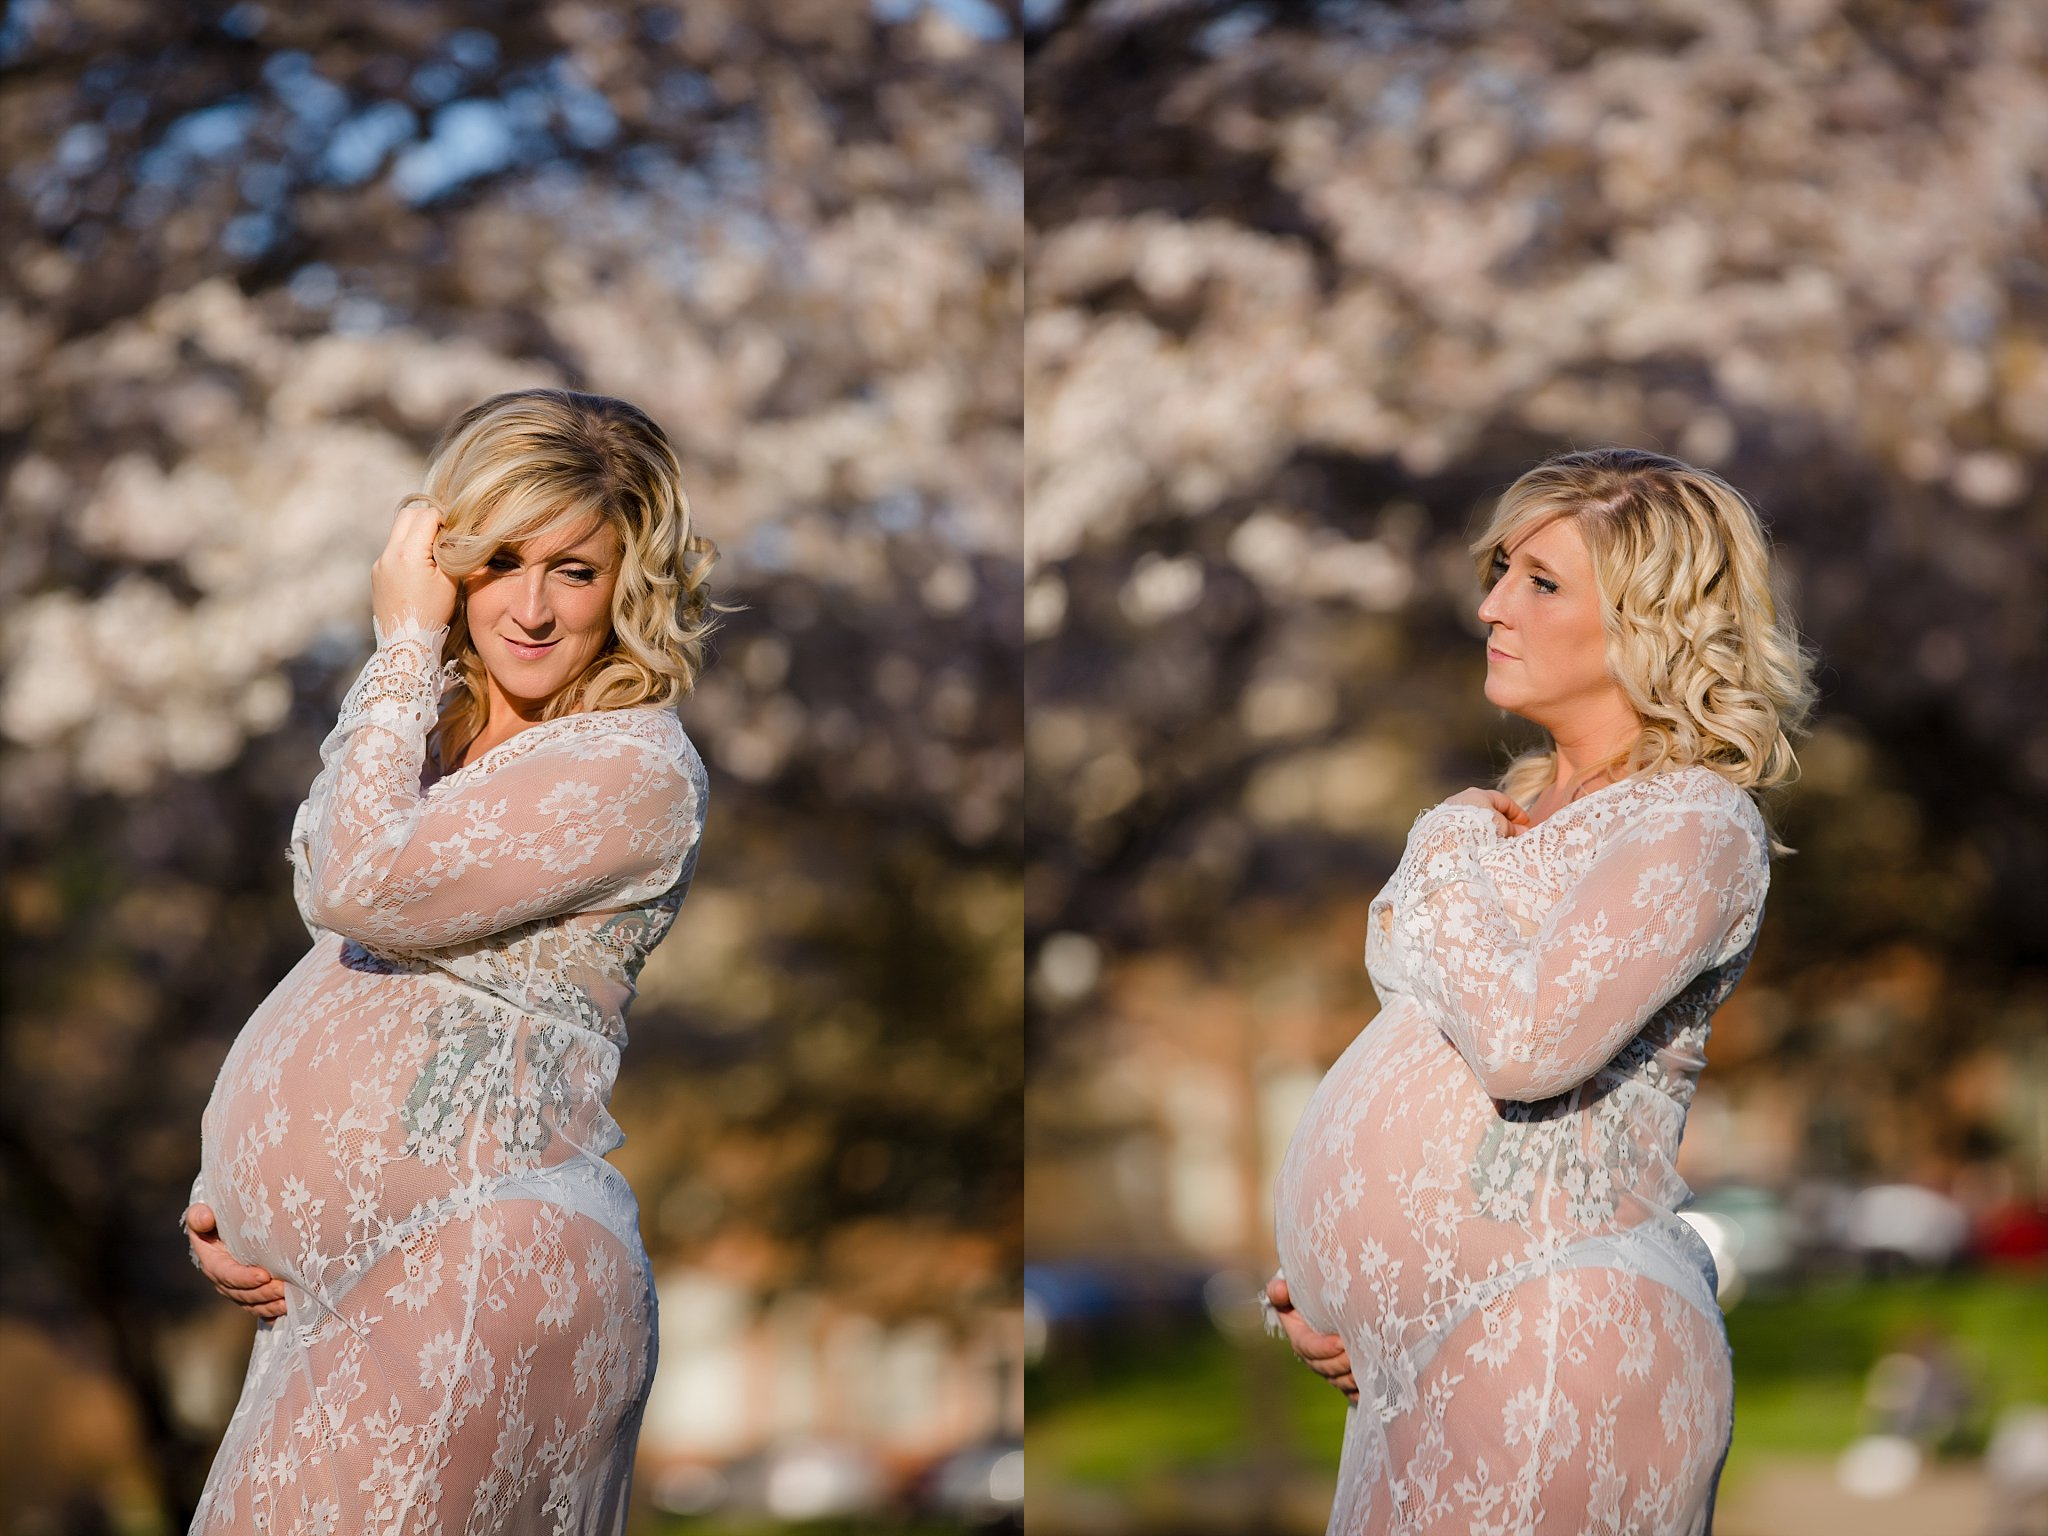 Spring Maternity session in downtown Columbus, Ohio